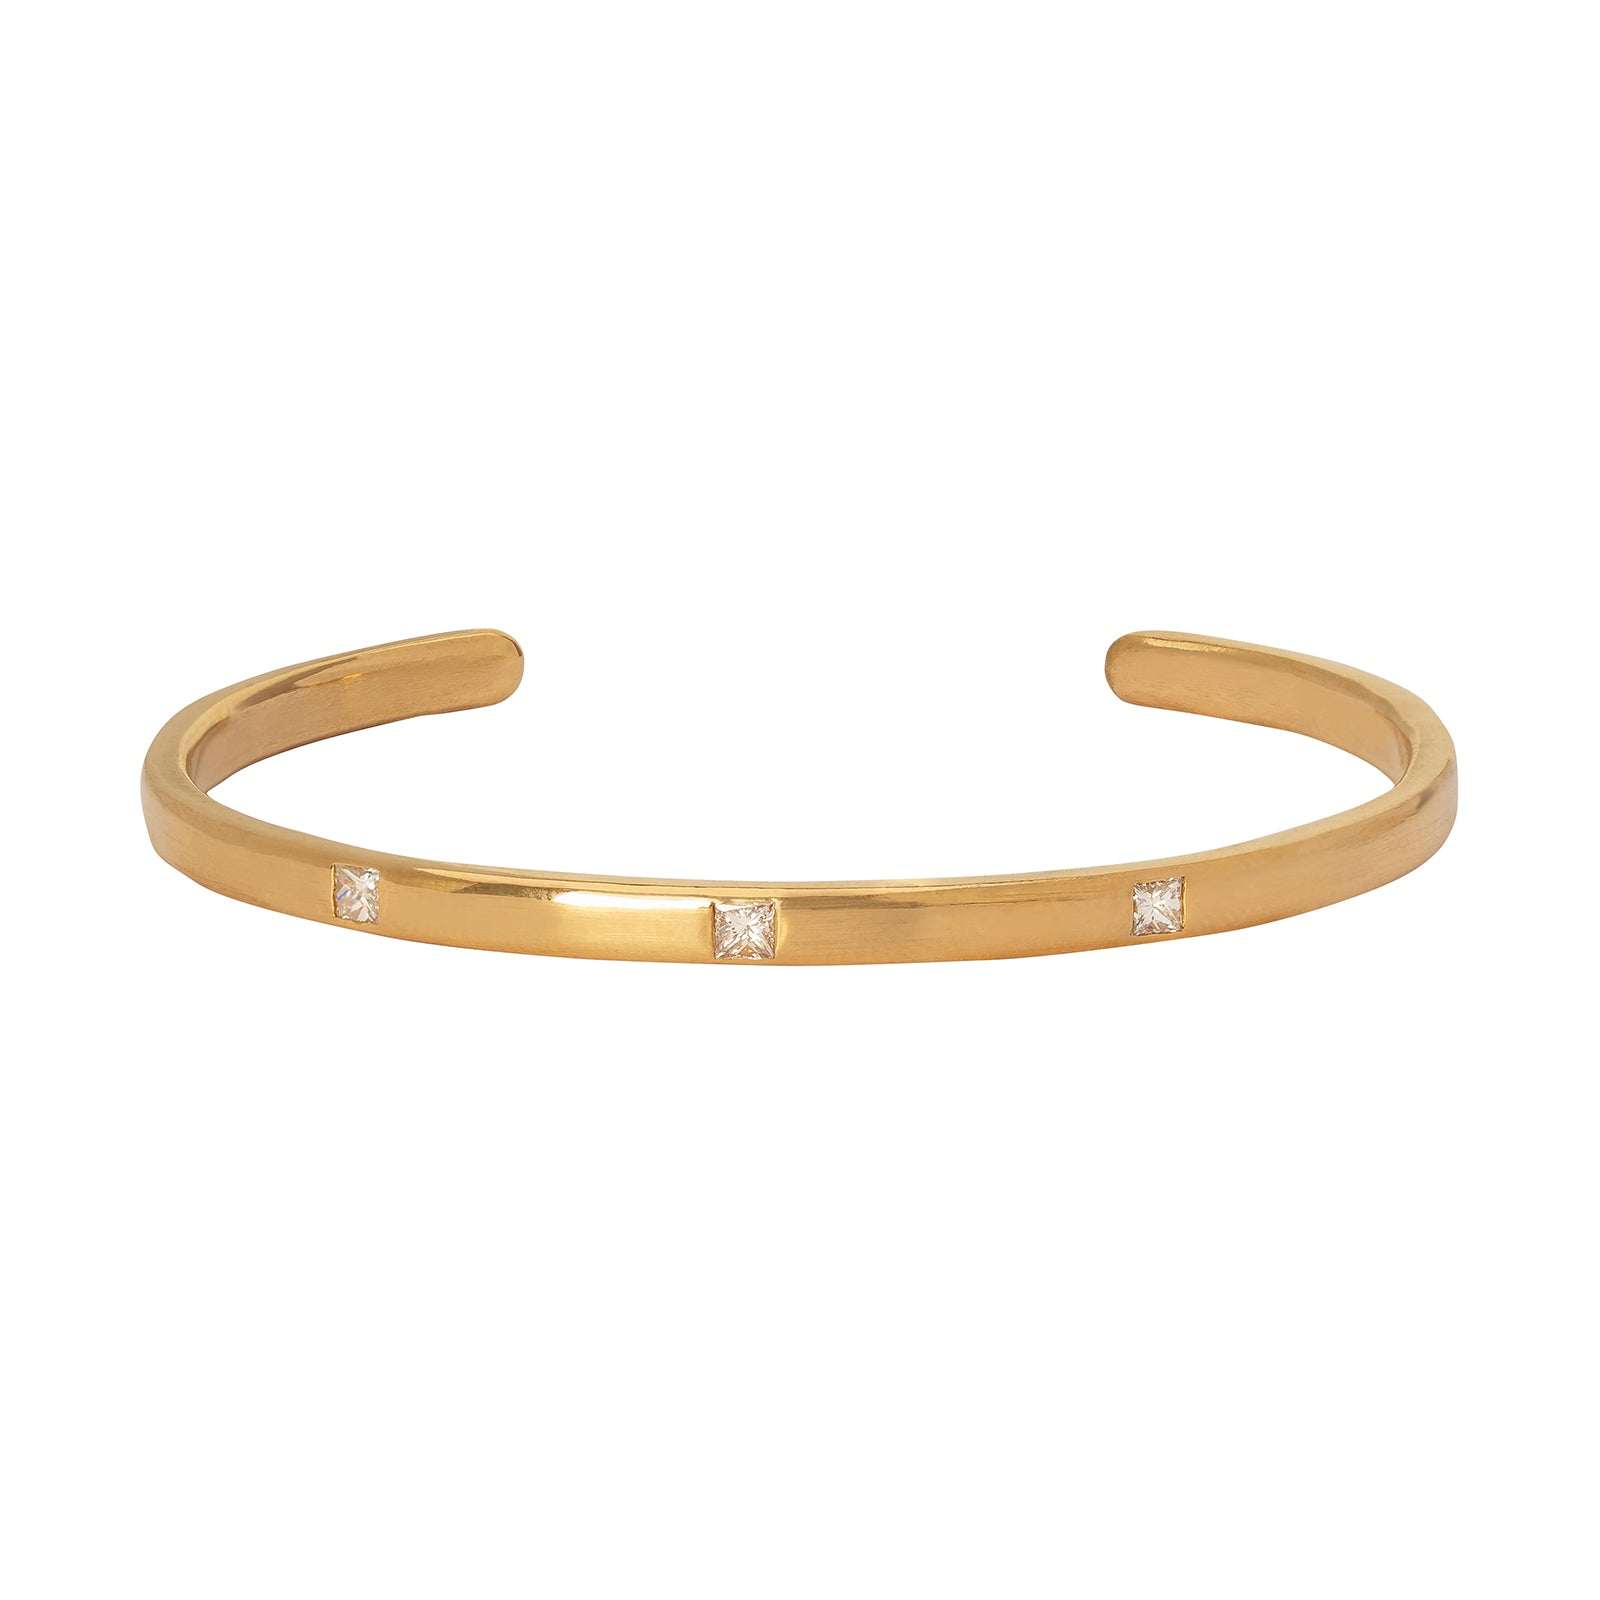 Loriann Stevenson Gold Polished Cuff - Five Princess Diamonds - Bracelets - Broken English Jewelry